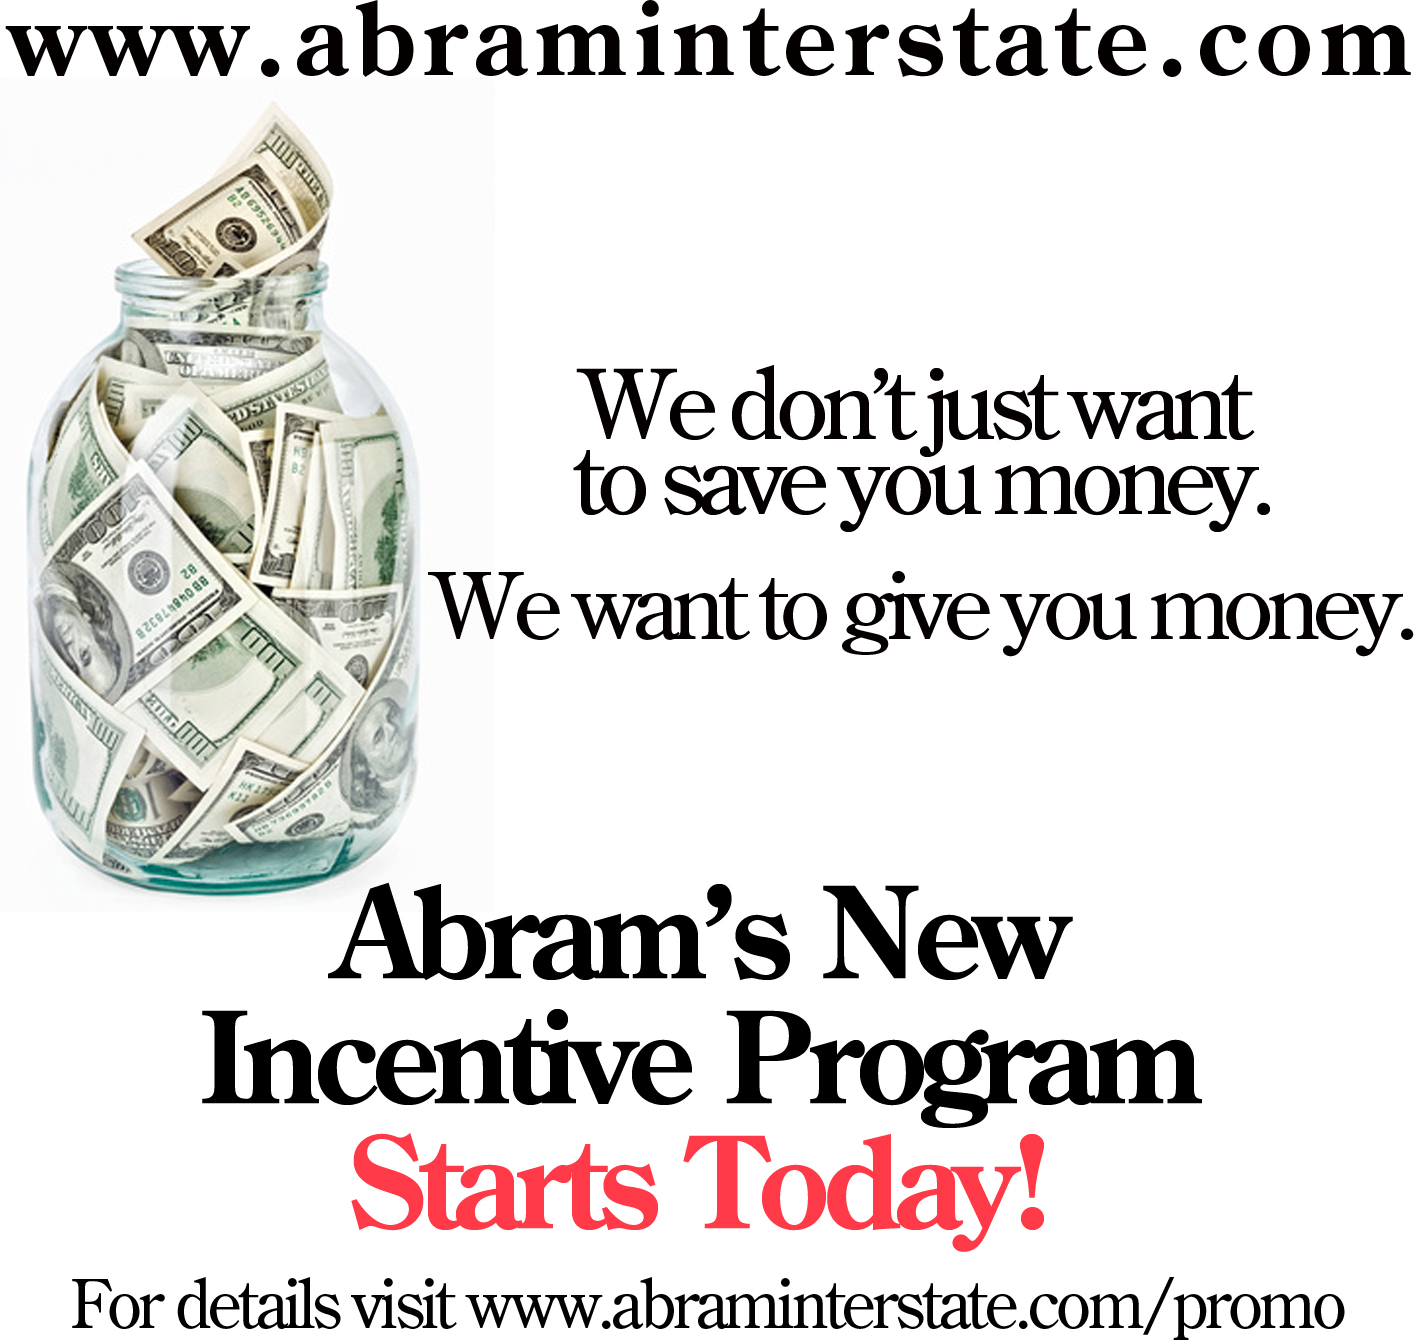 incentive blog ad - starts today! copy